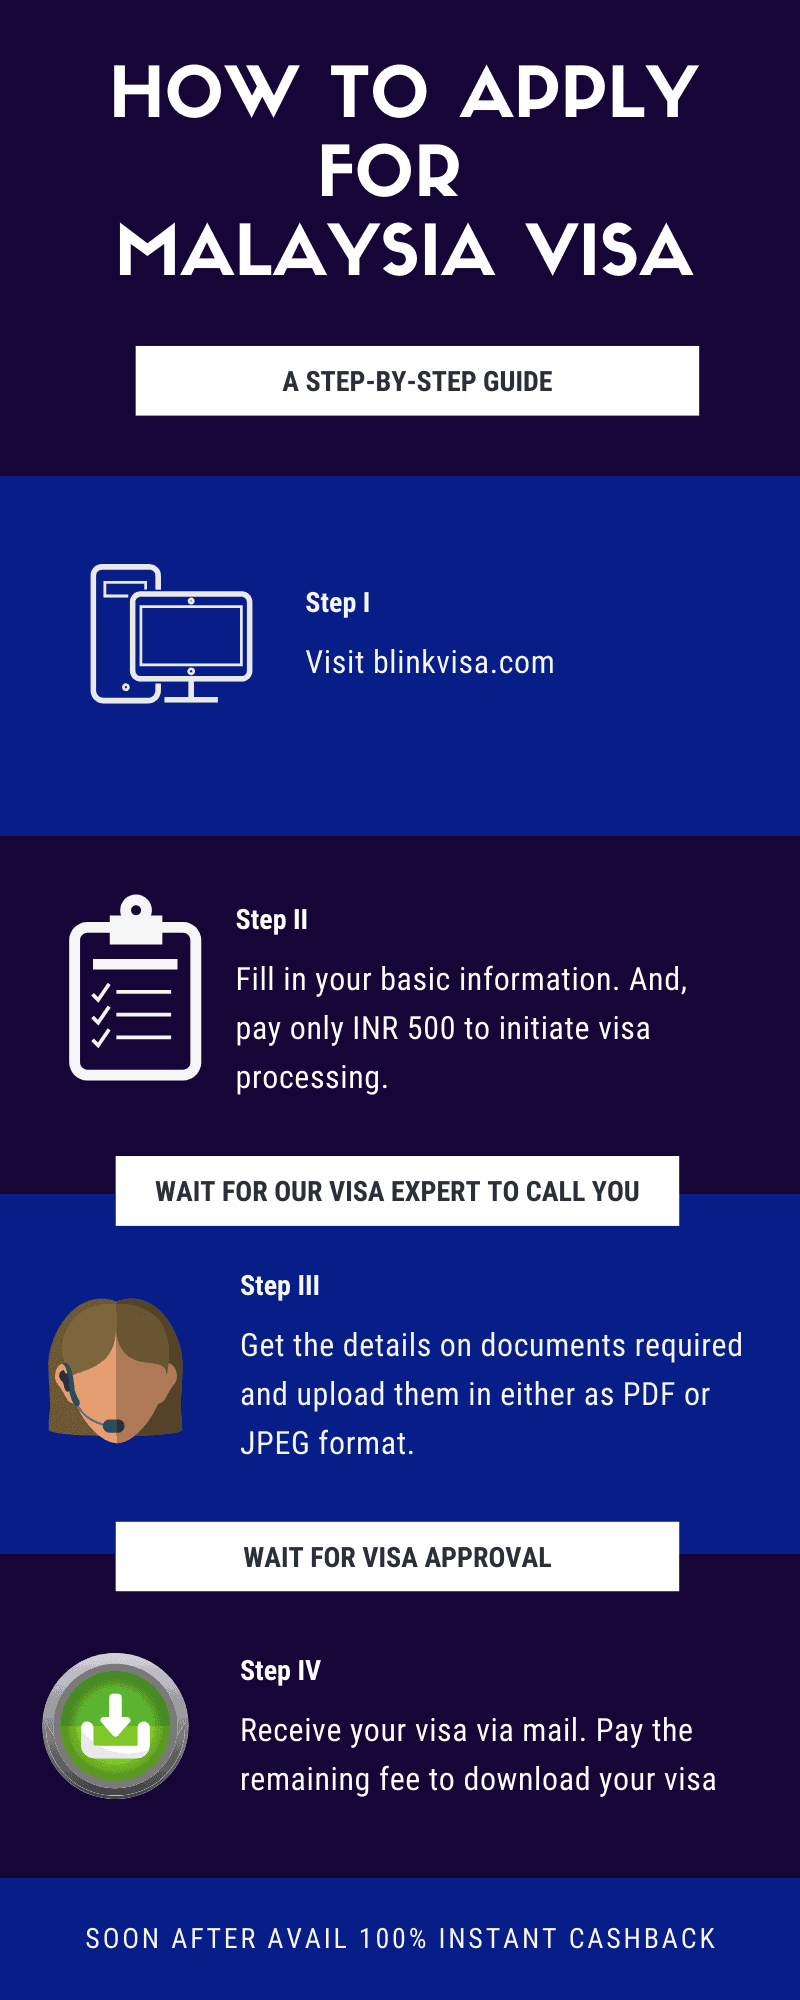 Steps to apply for Malaysia visa